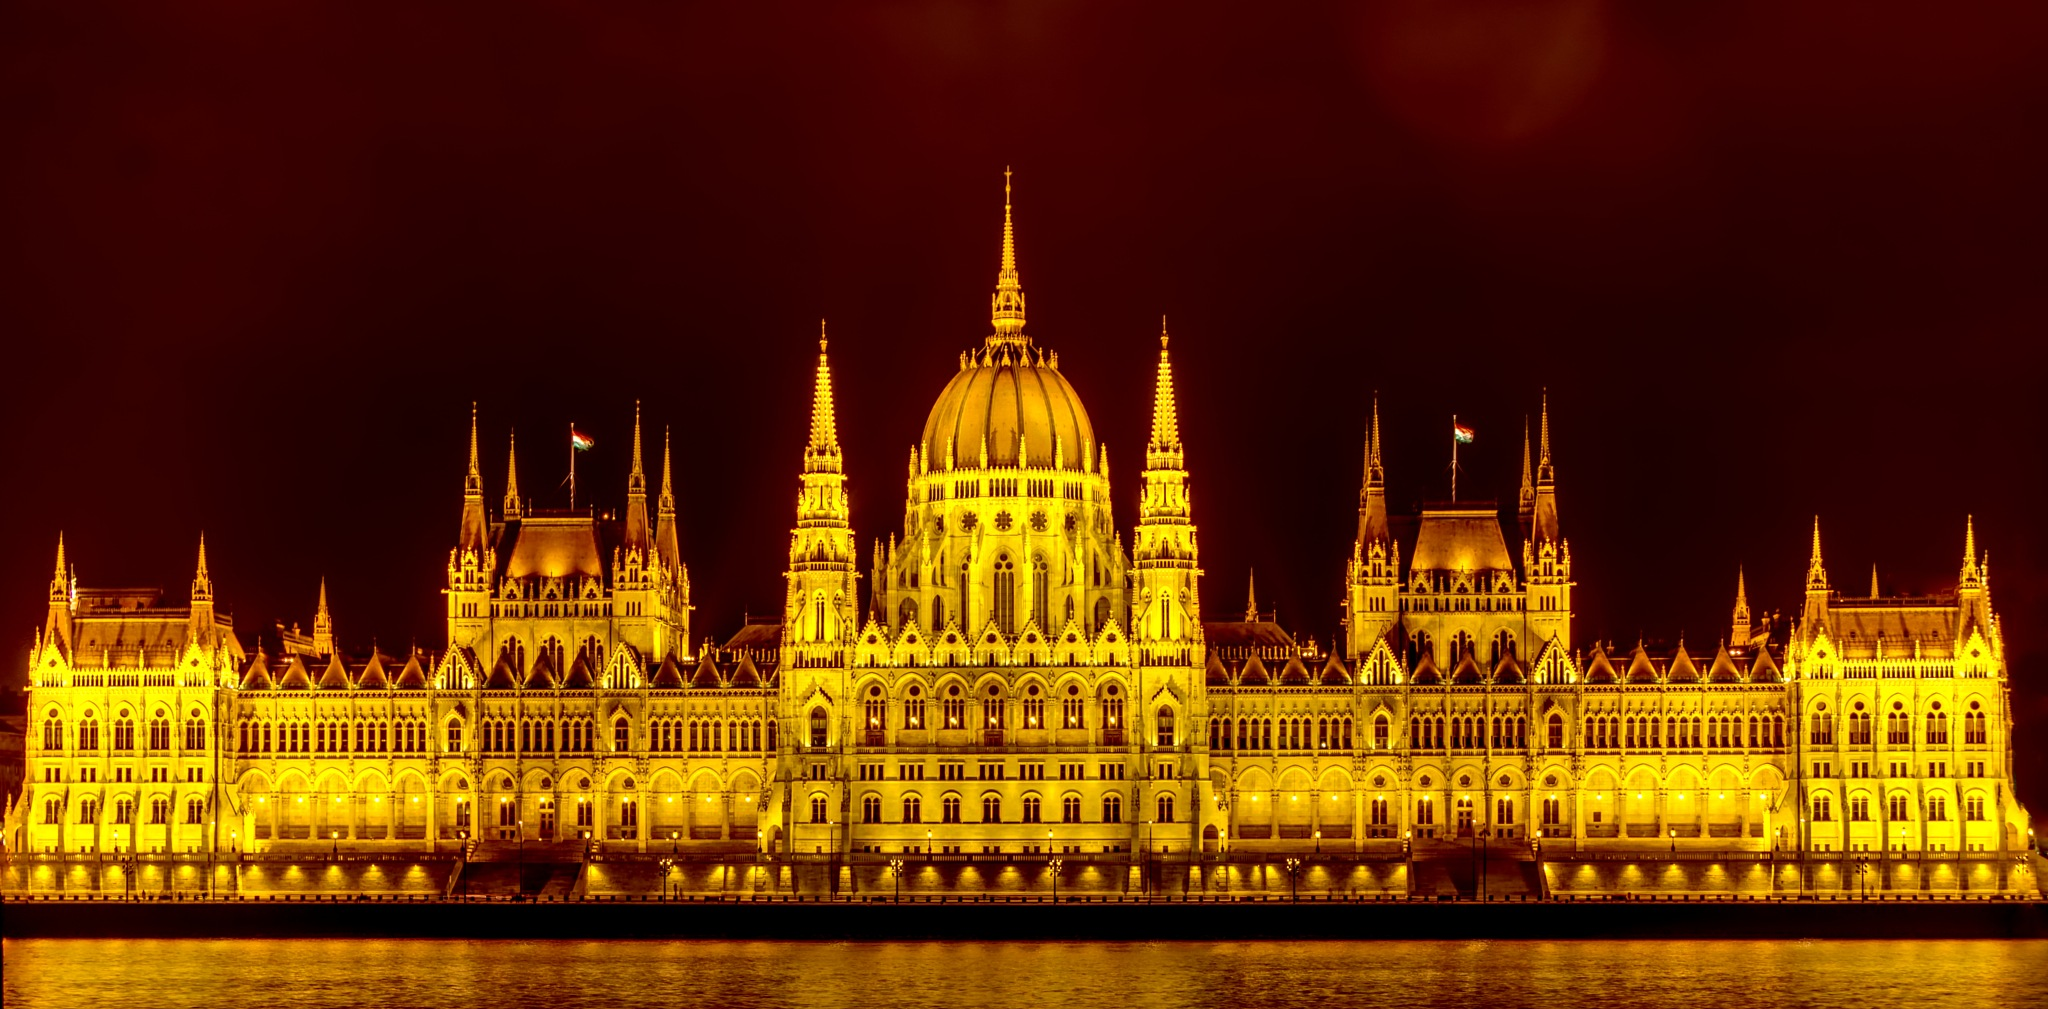 Parliament in Budapest by Piet de Rijcke